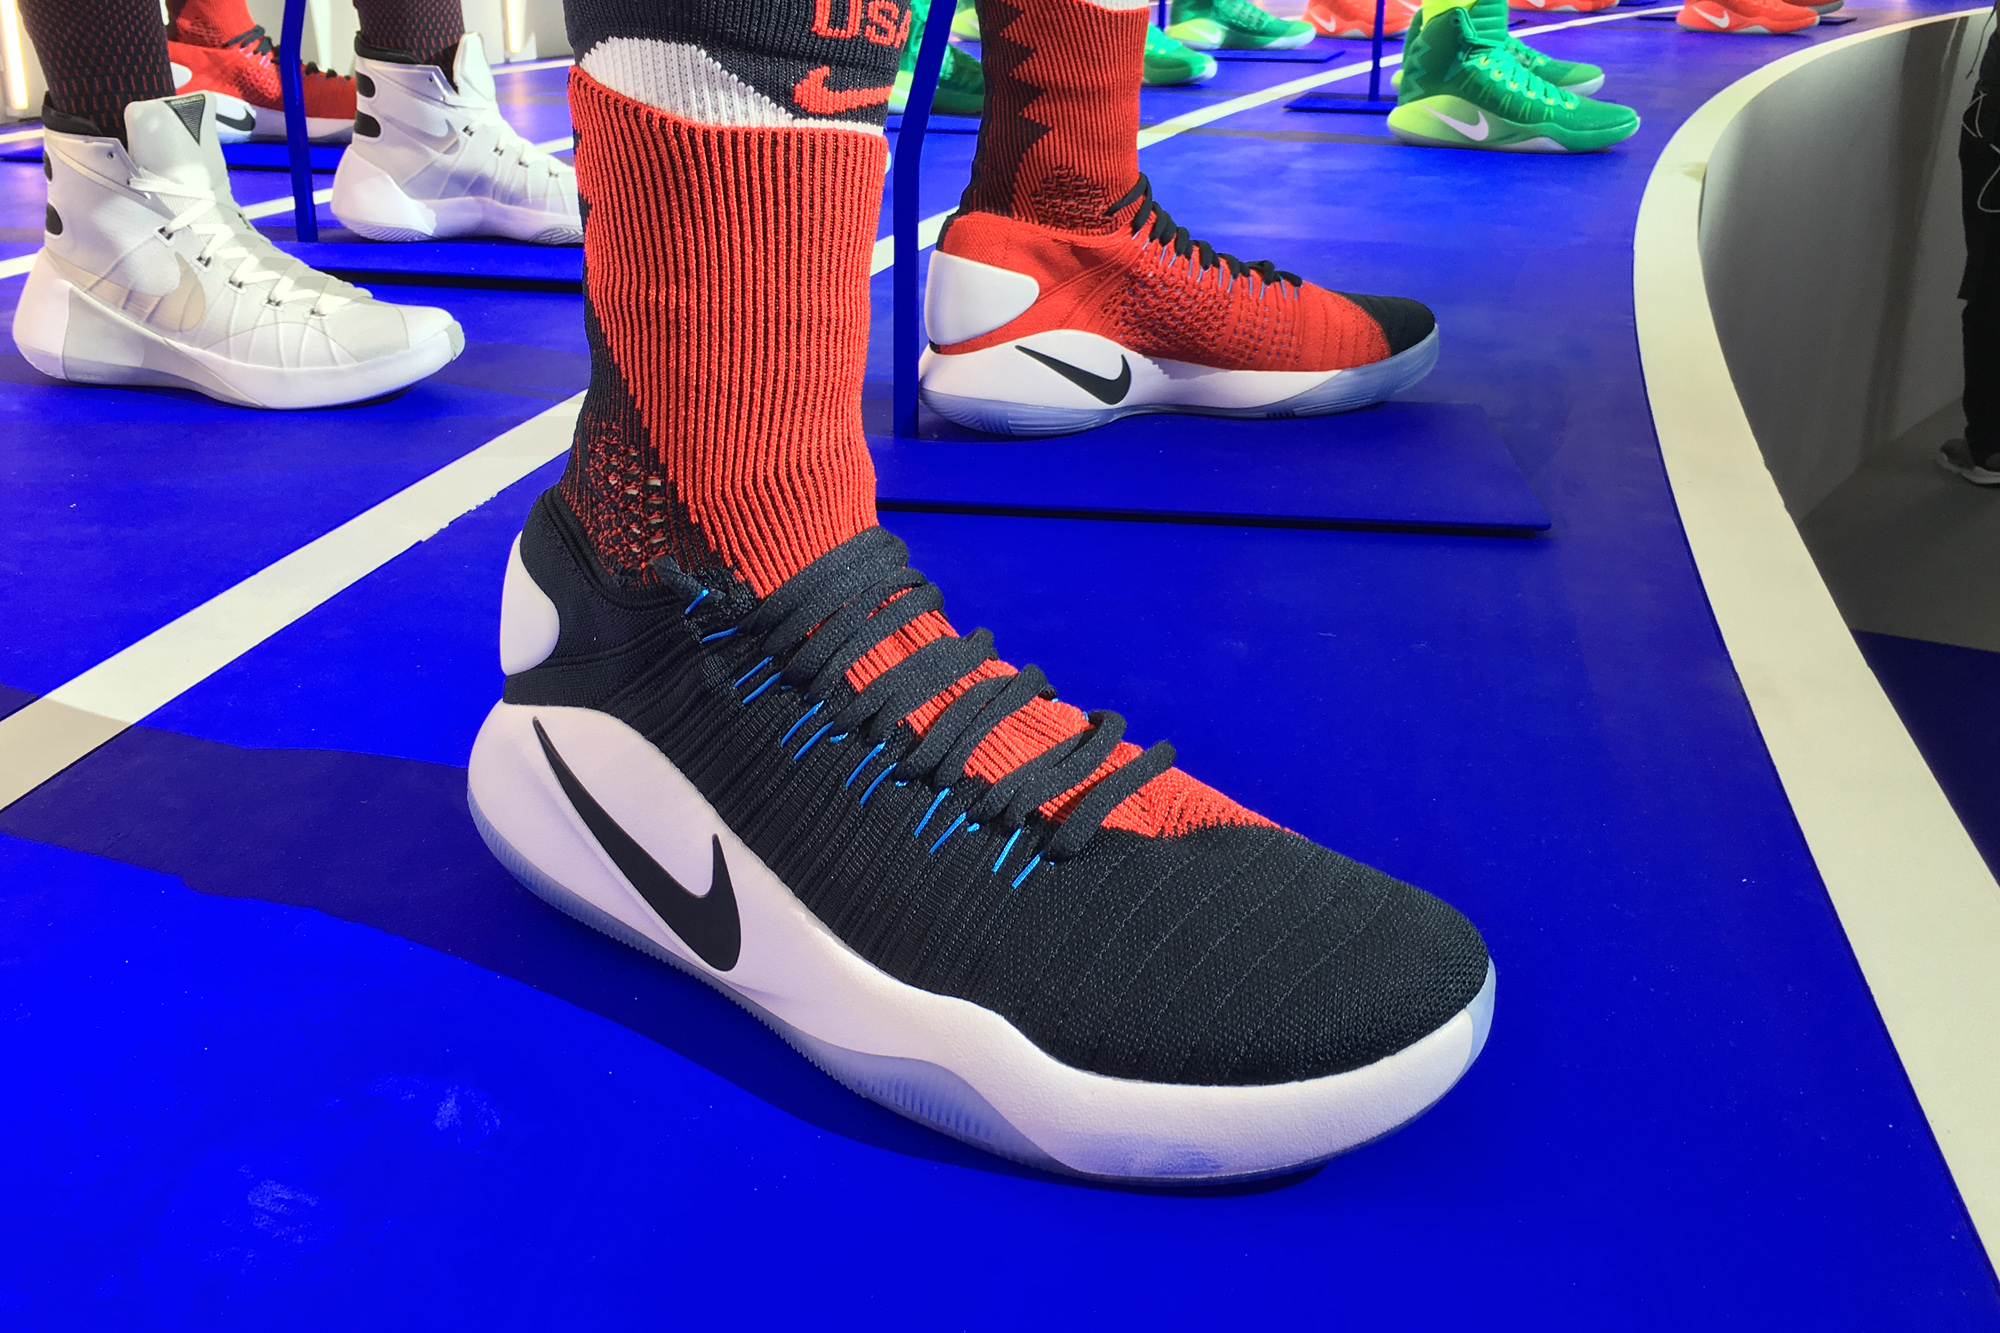 Nike and Jordan Clearance Sneakers for